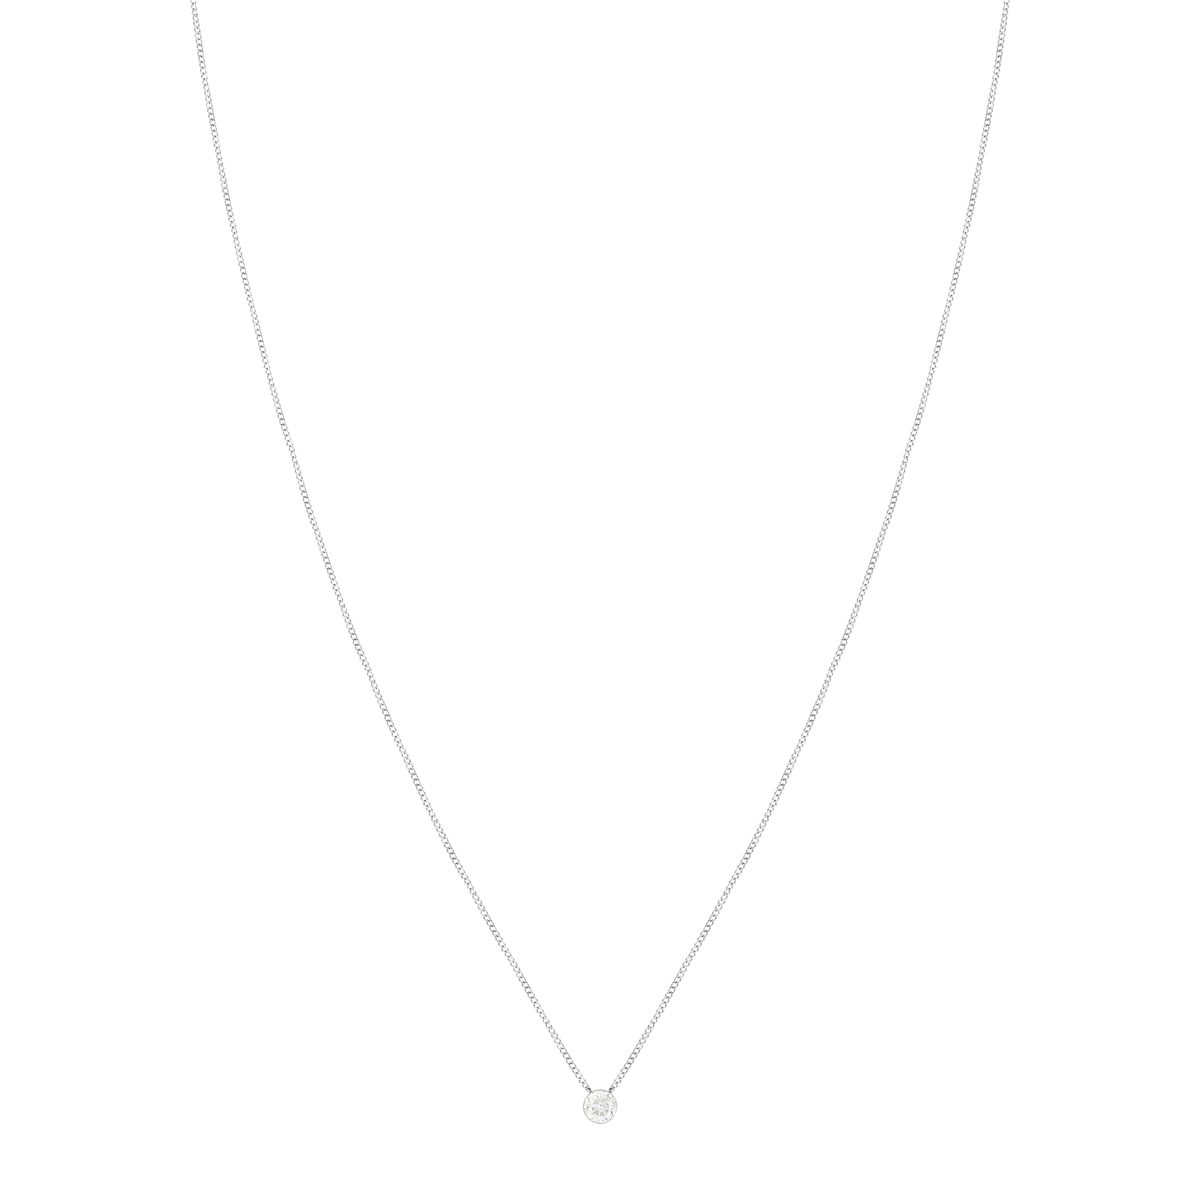 Collier MATY Or 375 blanc Diamant 45 cm - vue V1